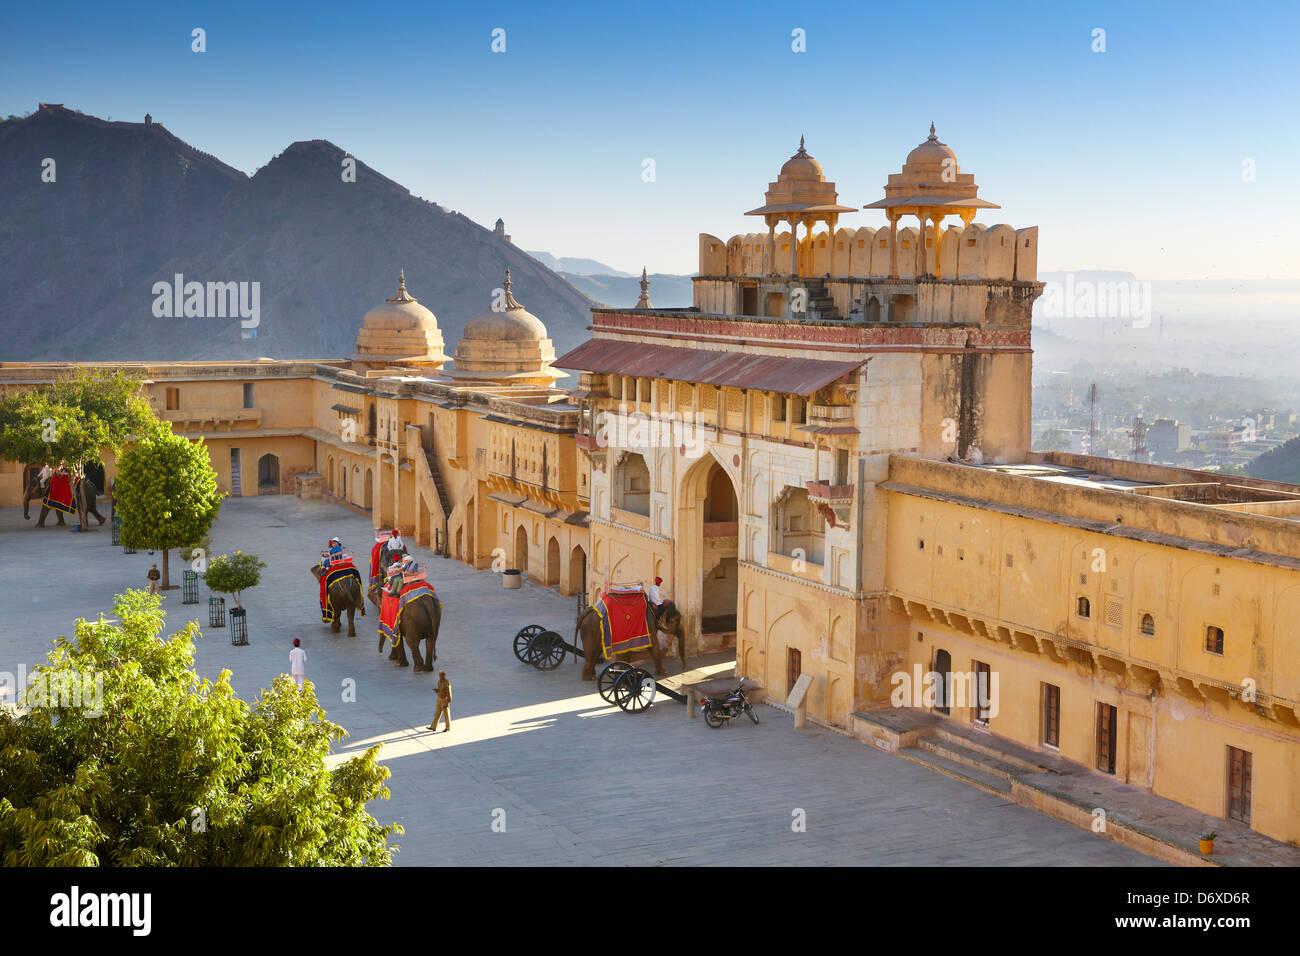 Amber Fort - landscape with elephants on the Jaleb Chowk courtyard and main gate of Amber Fort, Jaipur, Rajasthan, - Stock Image